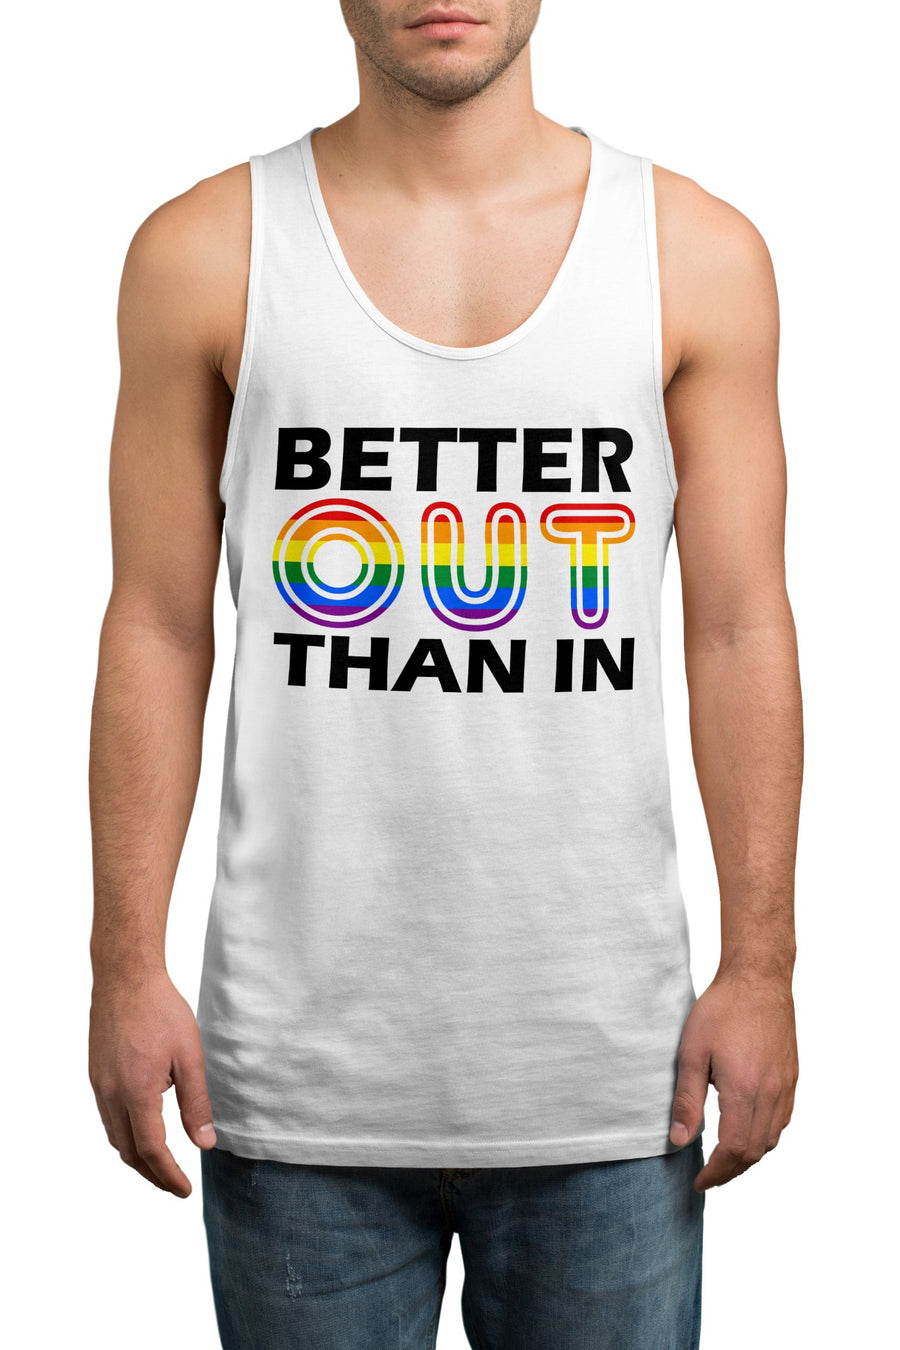 Better Out Than In Gay Pride Vest - Proud LGBT Tank Top